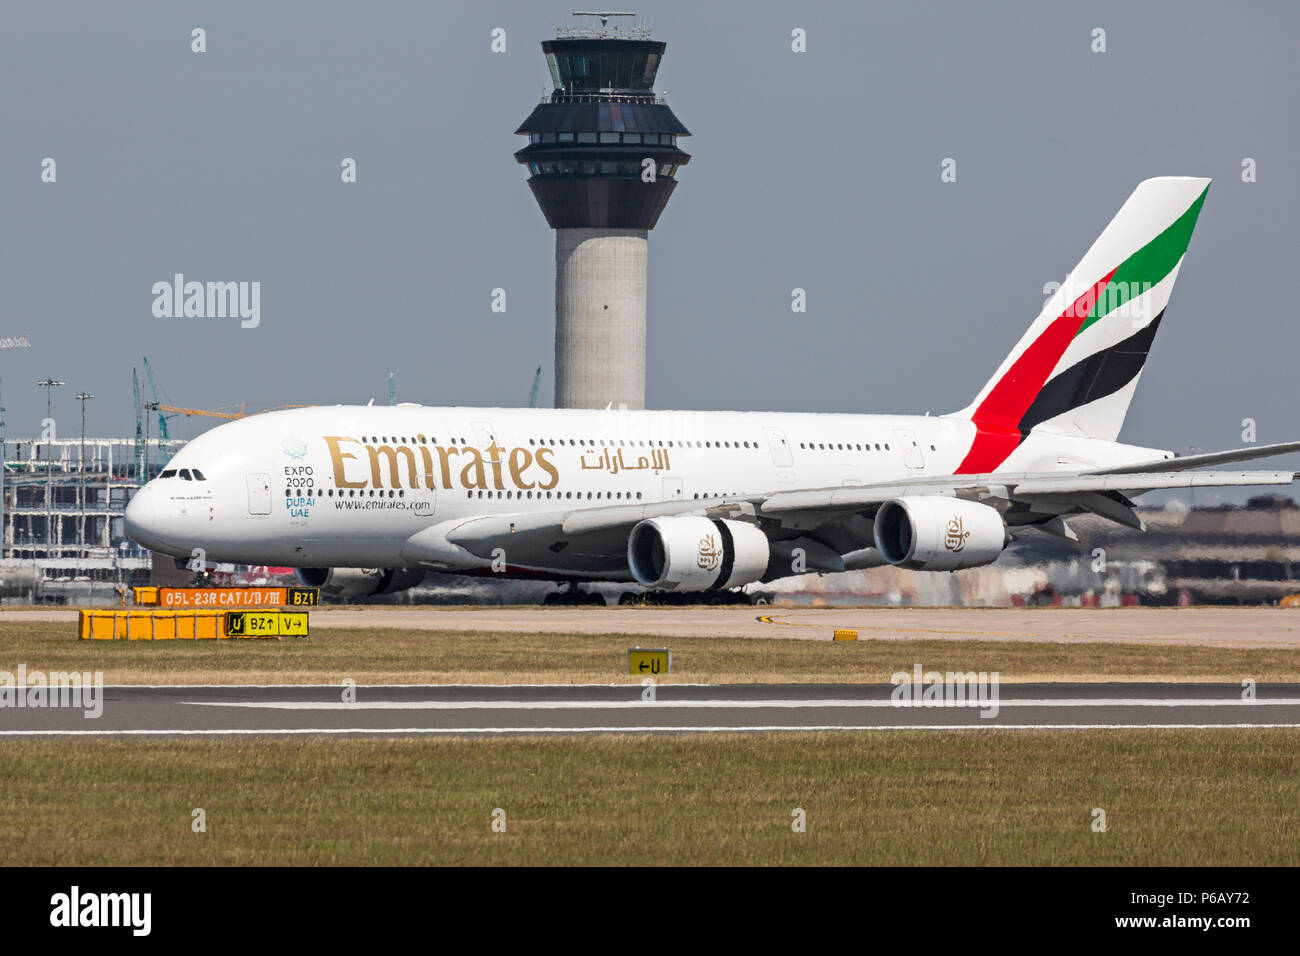 An Emirates Airlines Airbus A380 airliner, taking off from Manchester Airport in England. - Stock Image